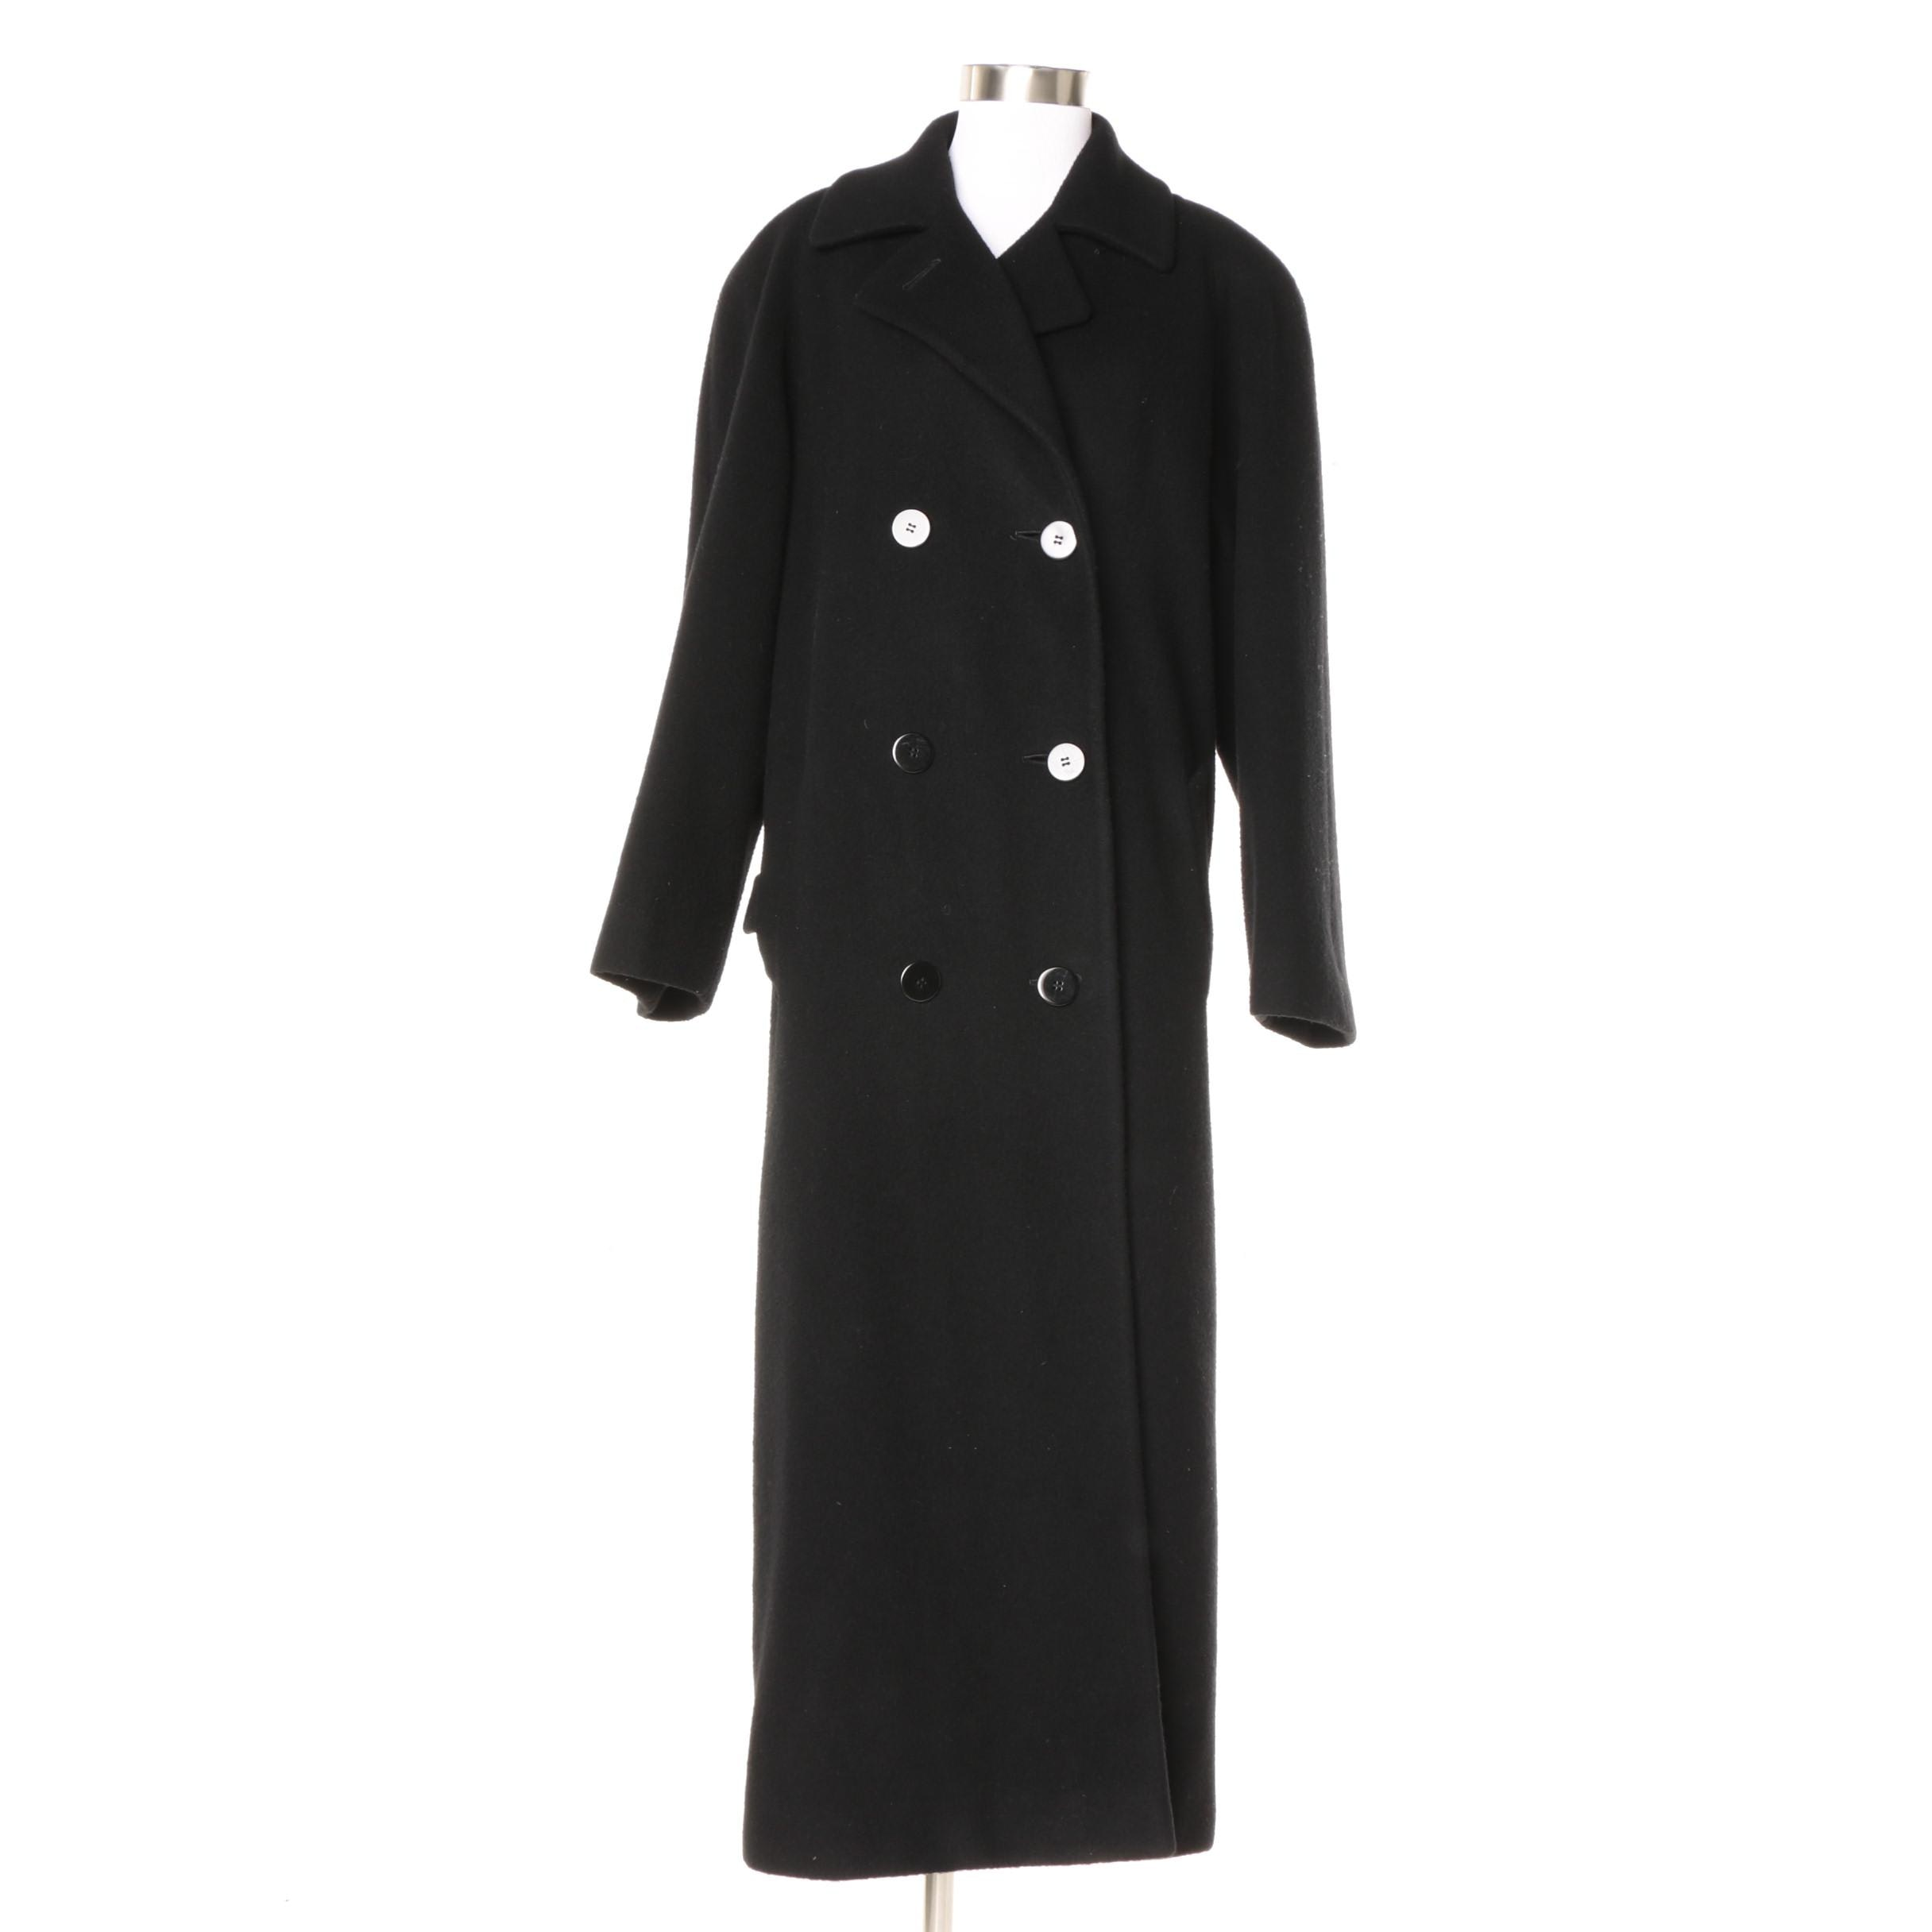 Vintage Neiman Marcus Double-Breasted Black Cashmere Coat